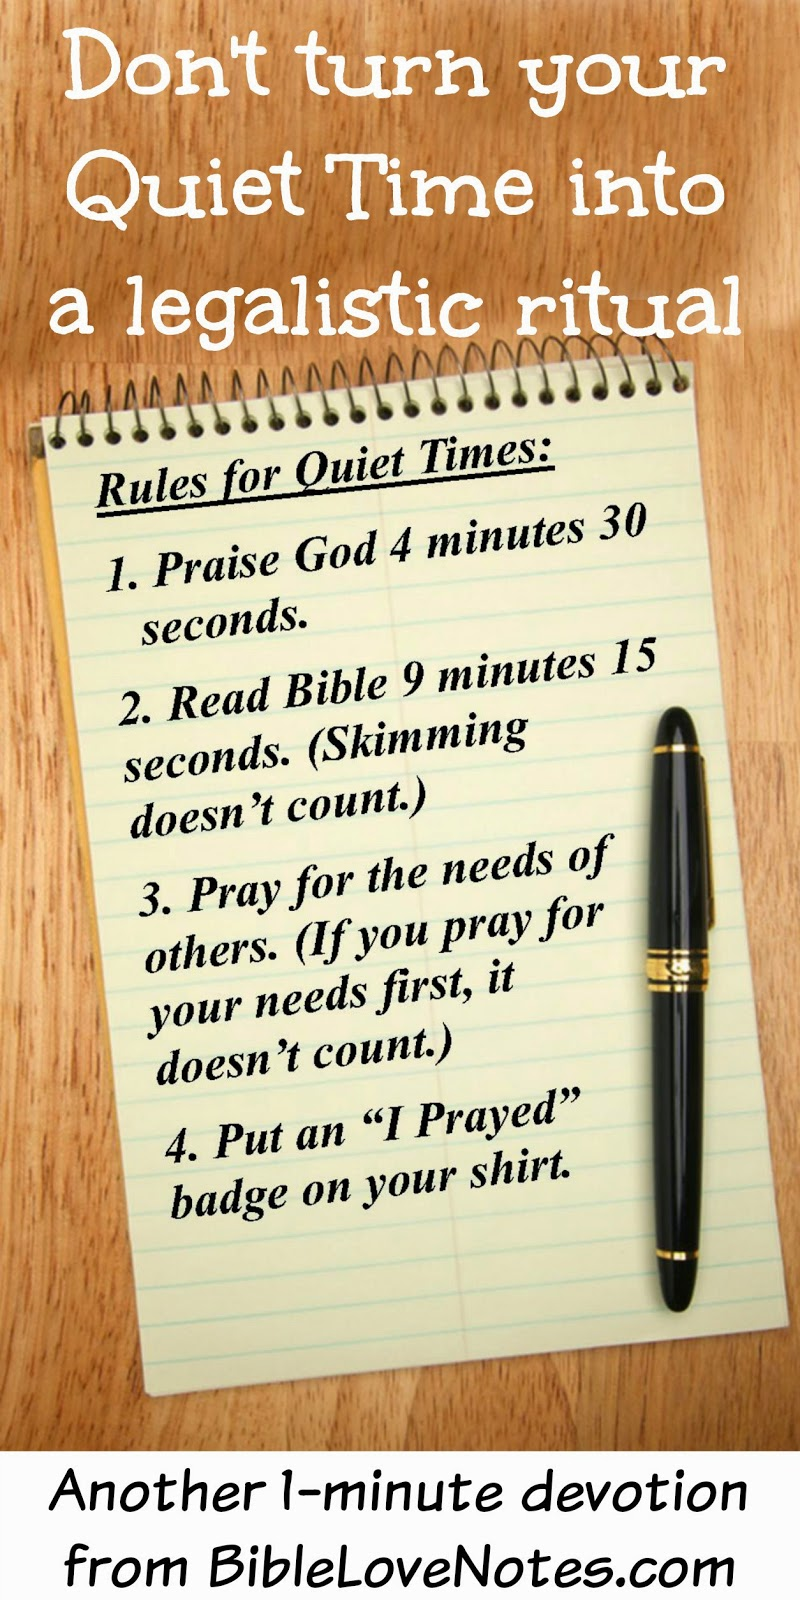 Don't let your Quiet Time get rigid, Time with God